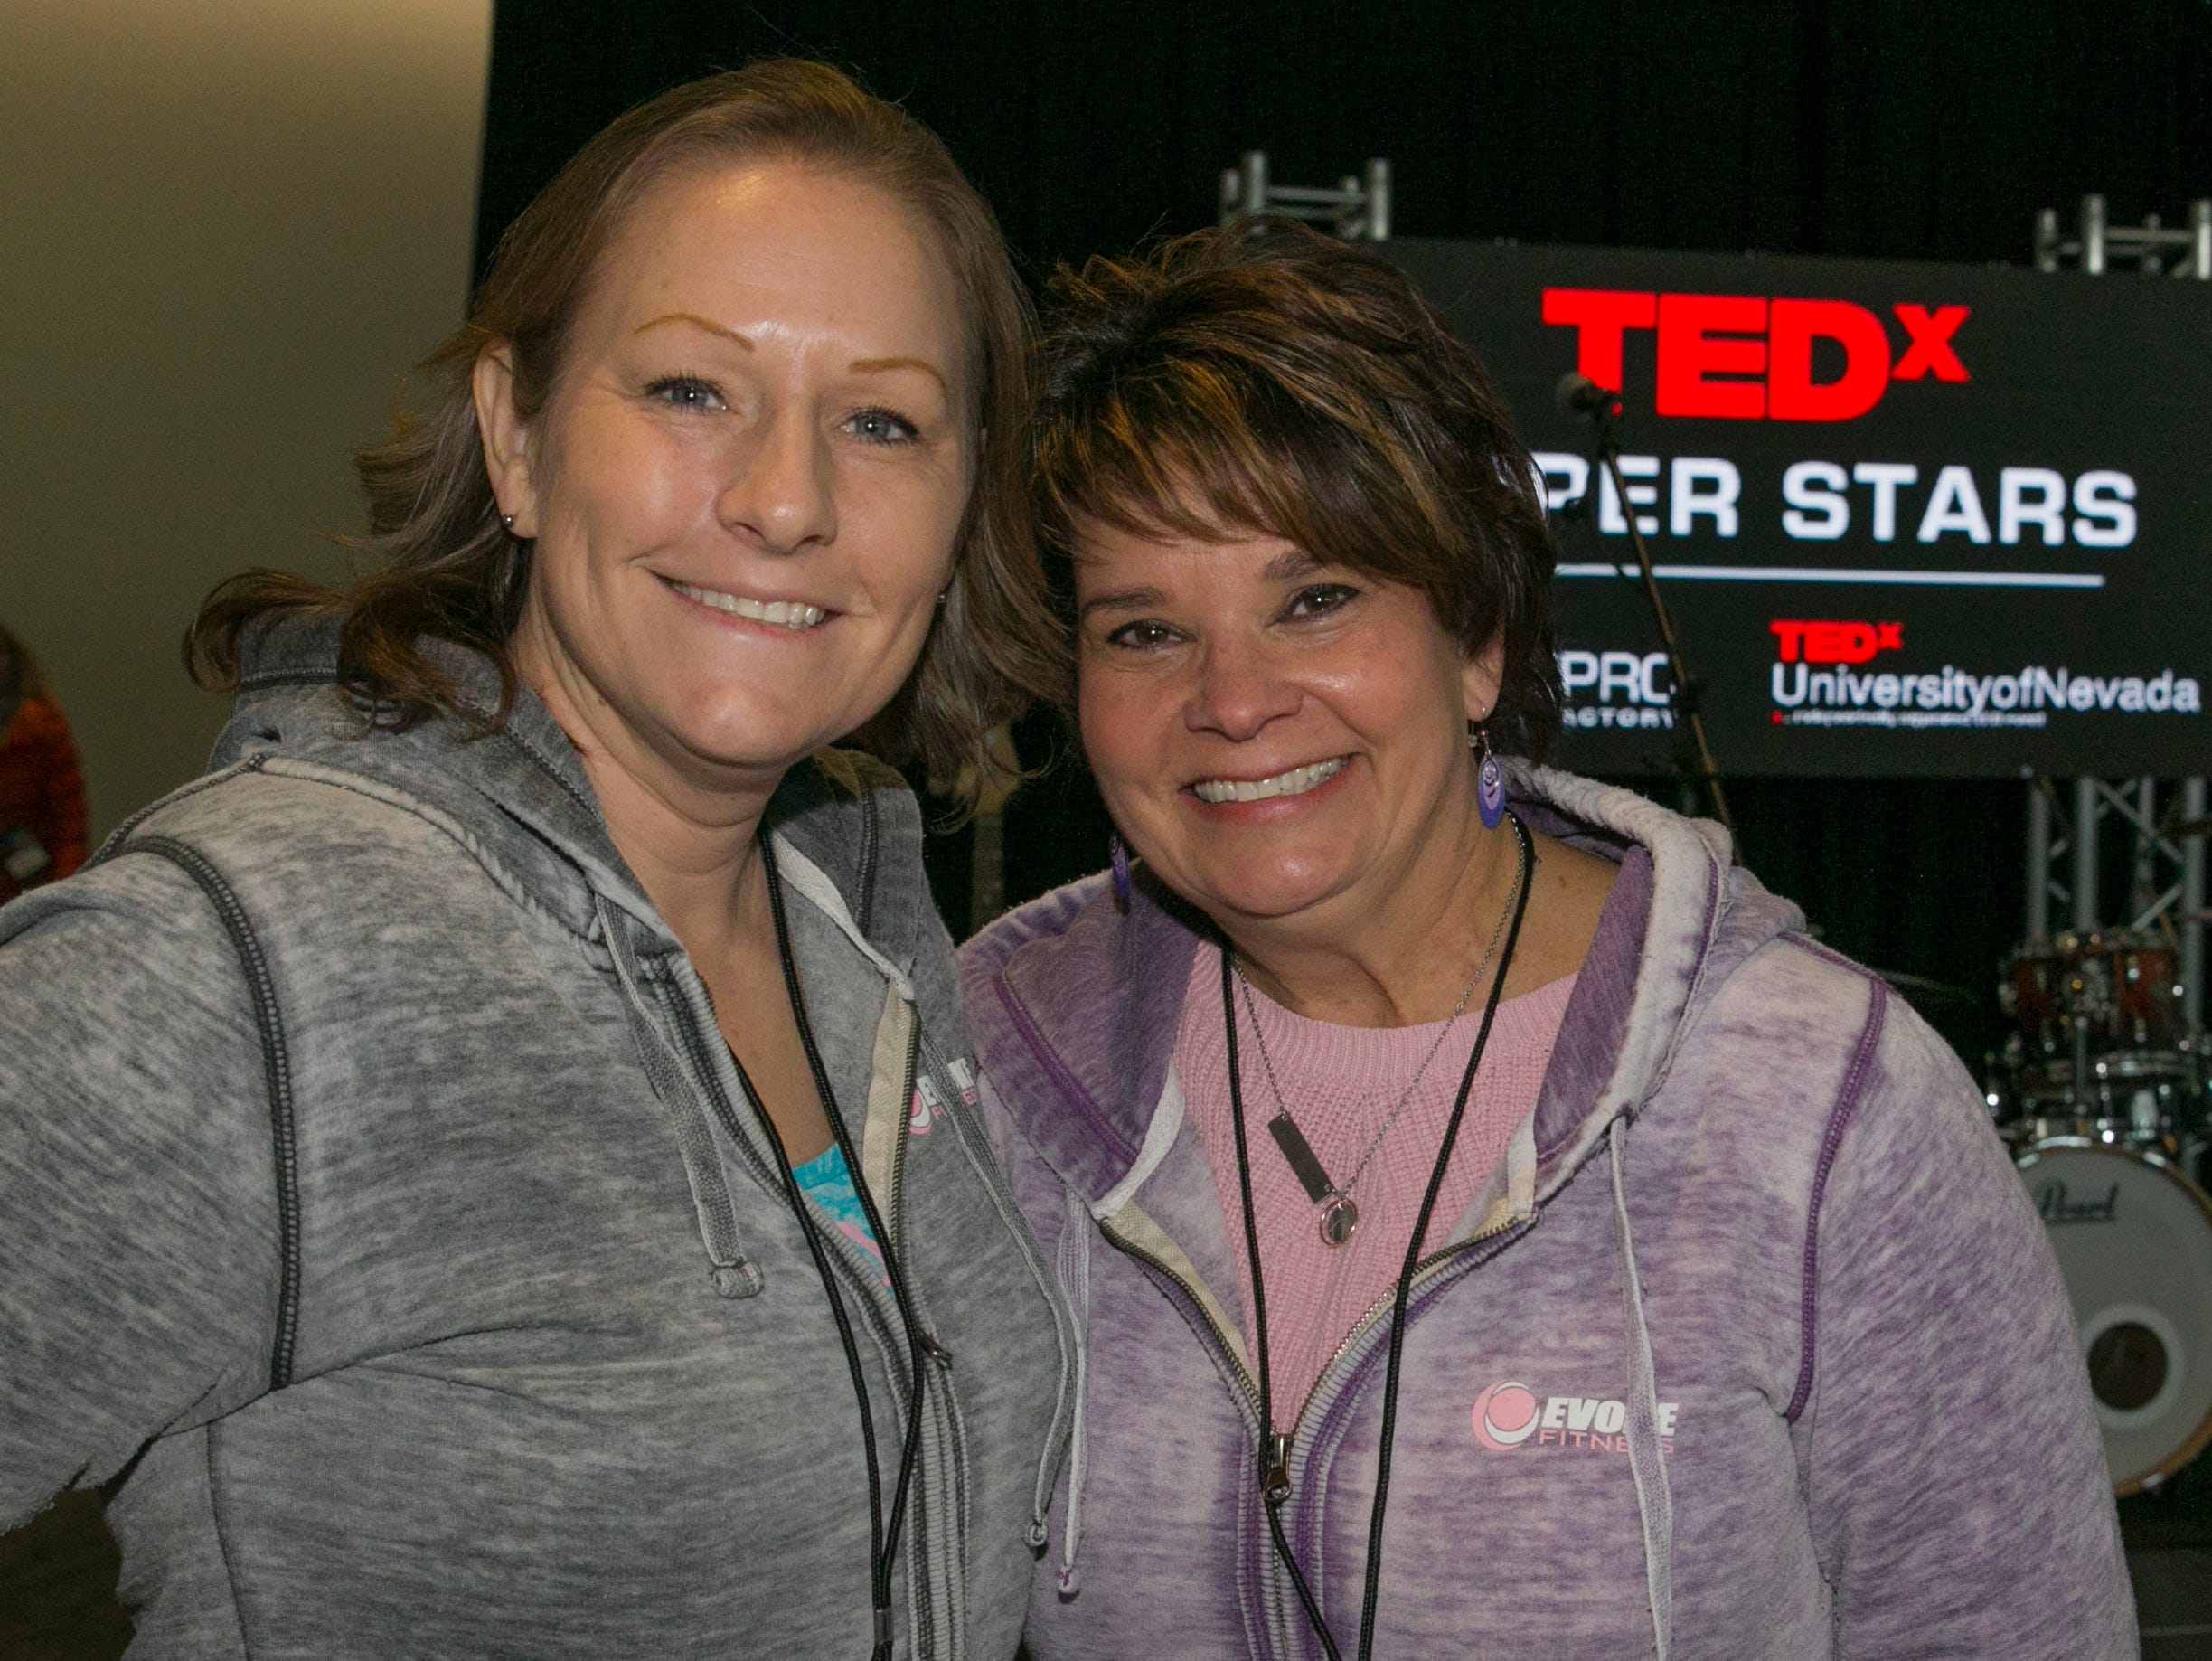 Jamie Jost and Lois Welch during TEDx University of Nevada 2019 at the Reno-Sparks Convention Center on Saturday, Feb. 23, 2019.